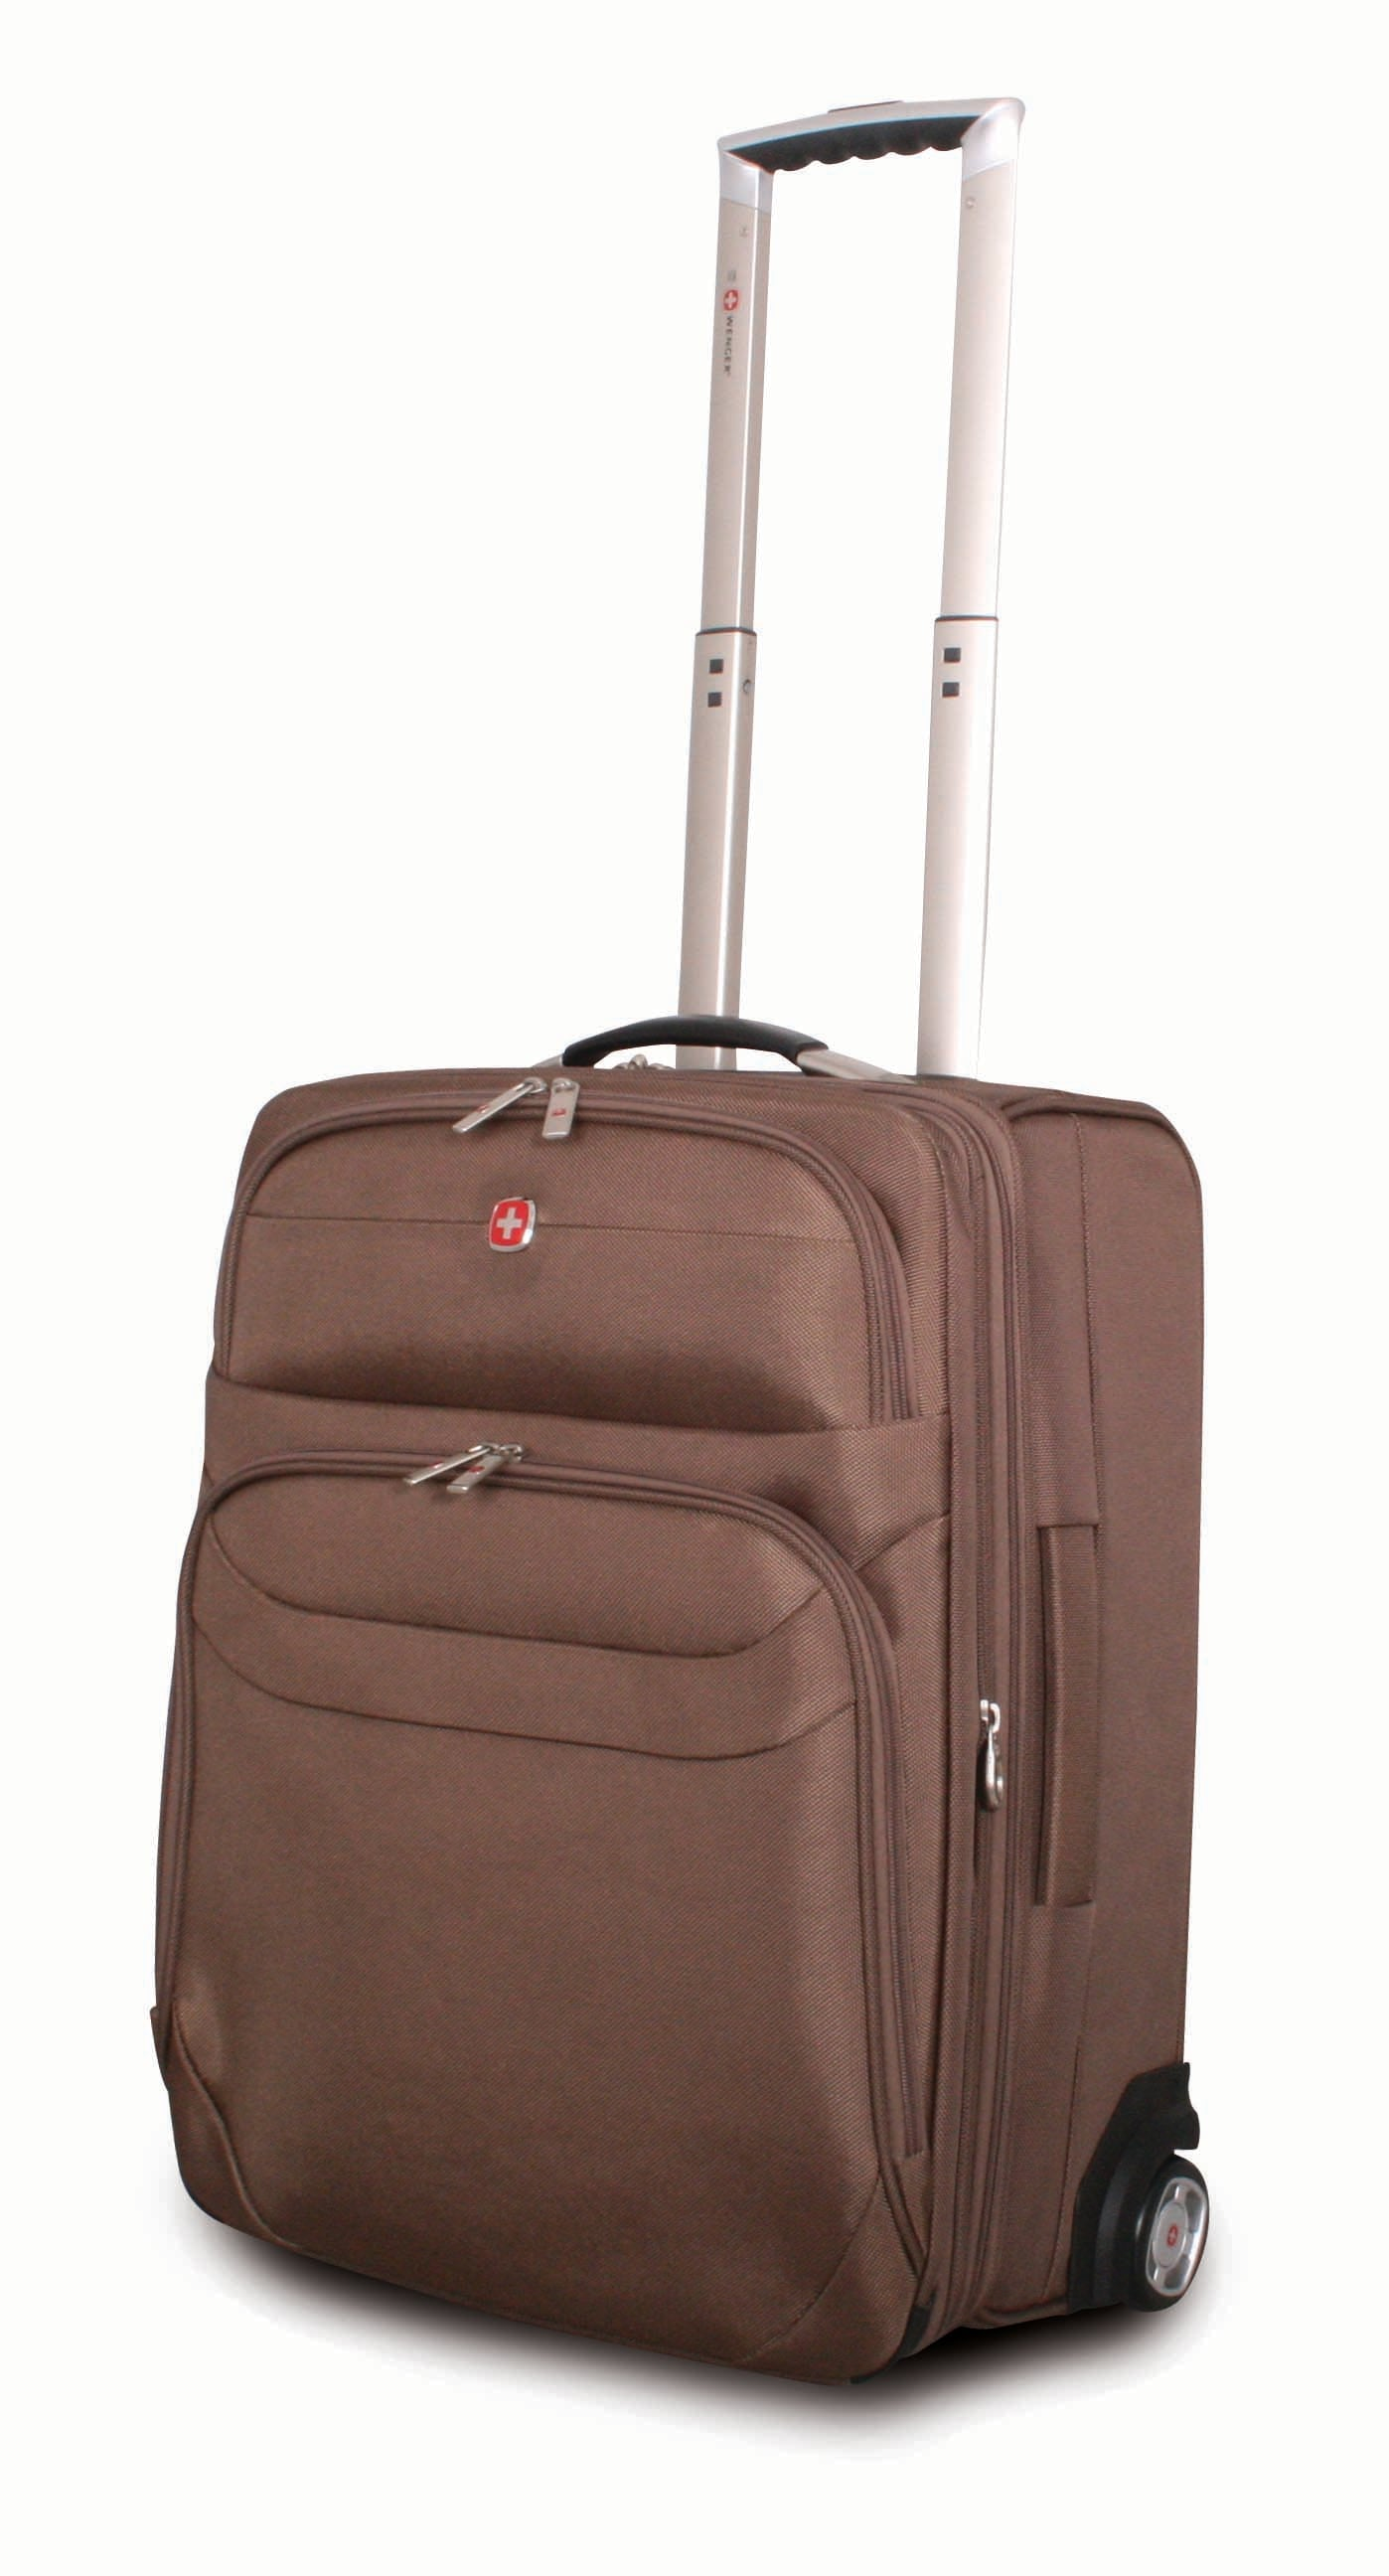 Wenger Chateau Collection 21-inch Upright Luggage - Thumbnail 1